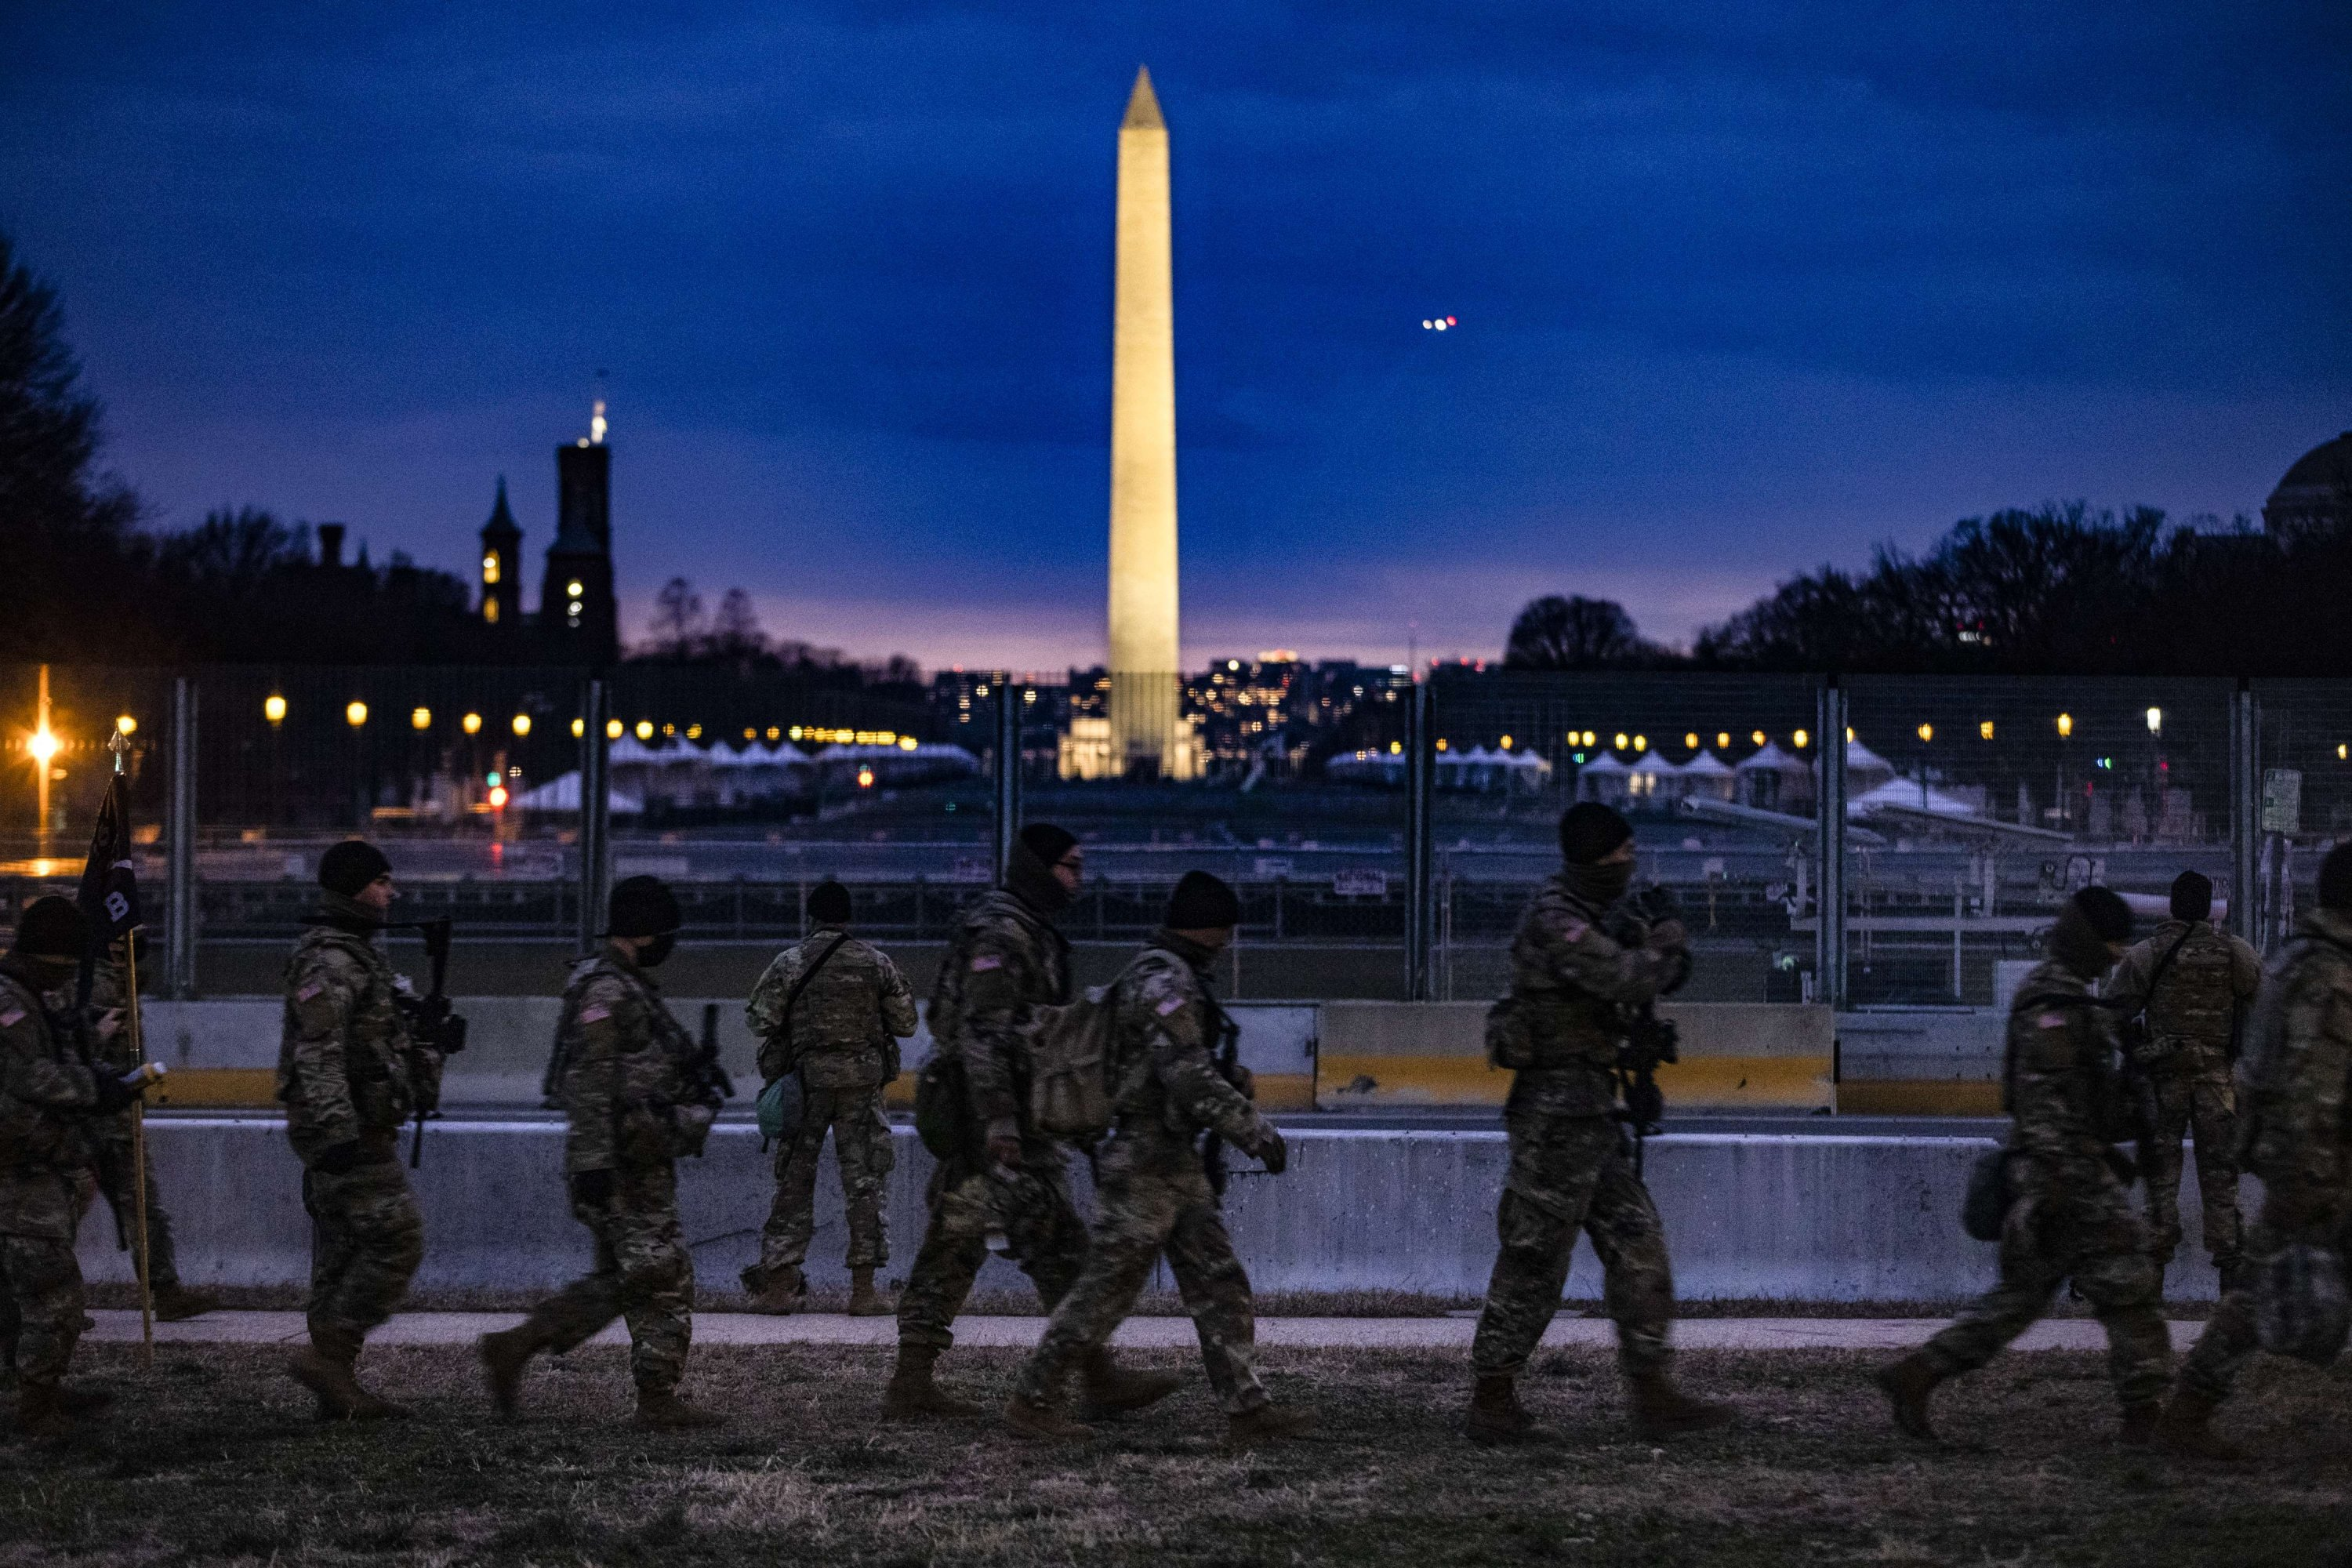 Soldiers from Bravo Company, 1st Battalion, 116th Infantry Brigade Combat Team, Virginia National Guard stand watch on the National Mall in Washington, D.C., U.S., Jan. 17, 2021. (Getty Images/AFP)